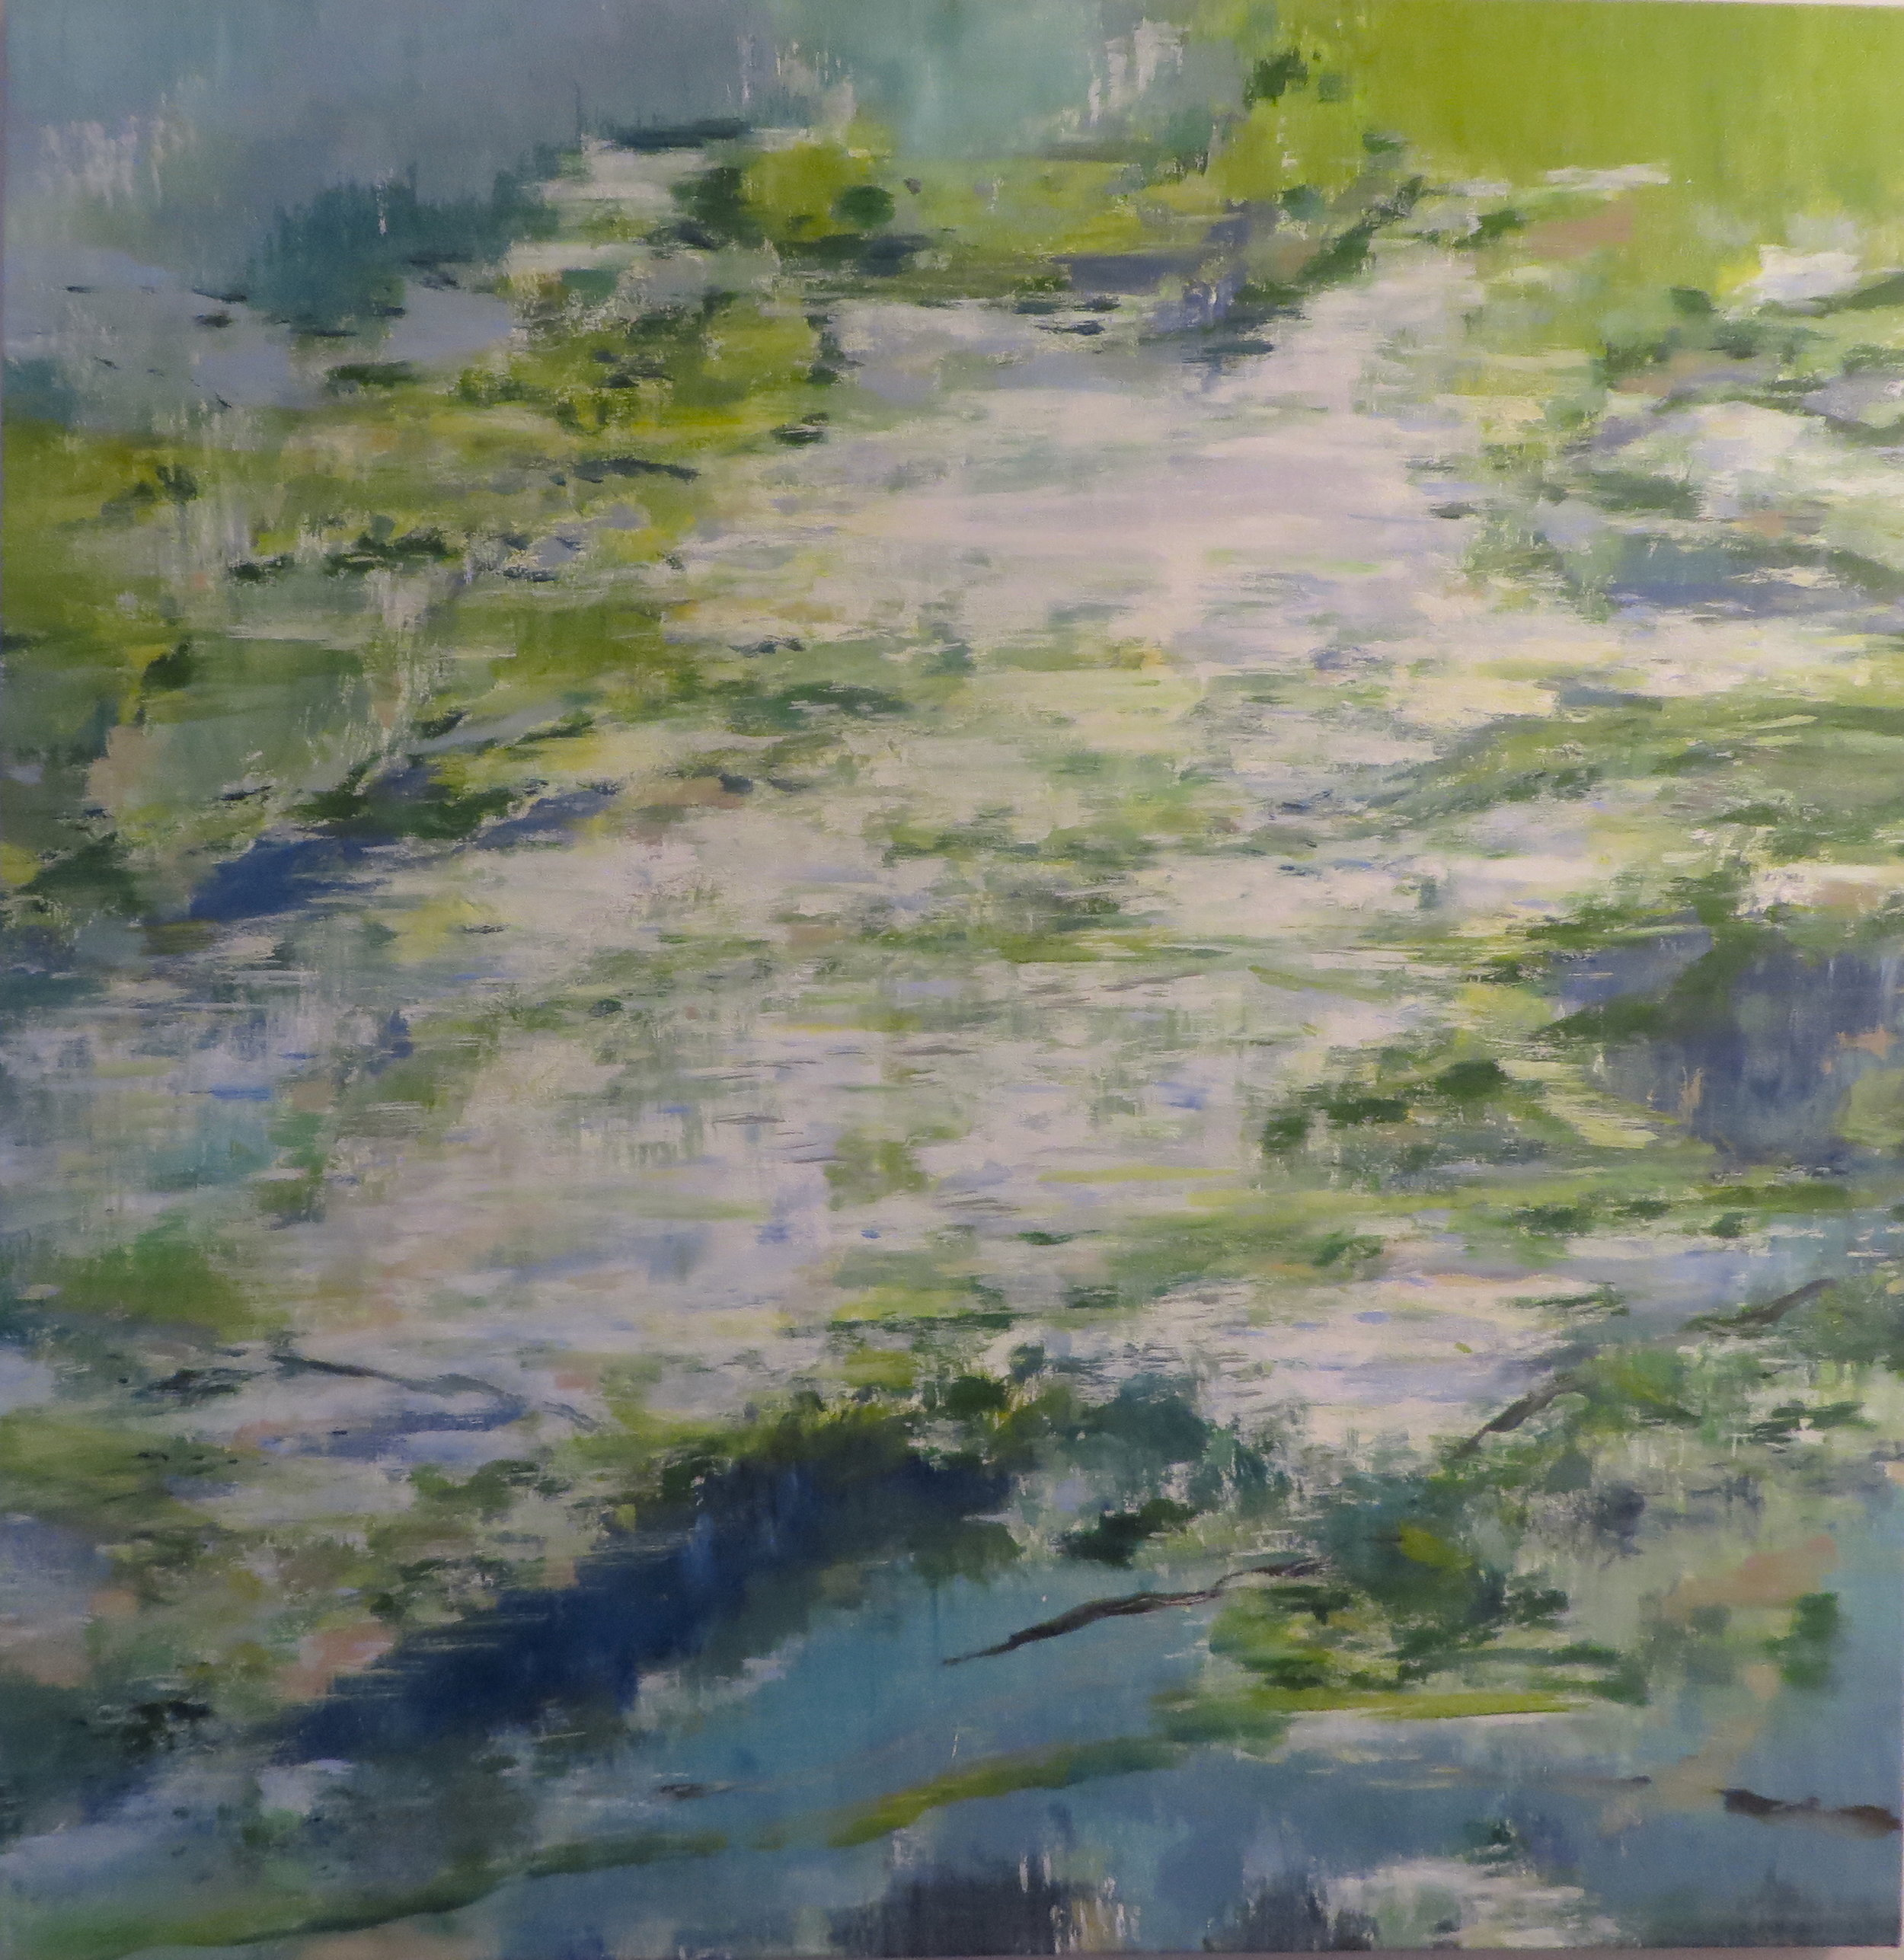 Earth Green Water Blue, 2012, oil, canvas, 38 x 36 in, SOLD